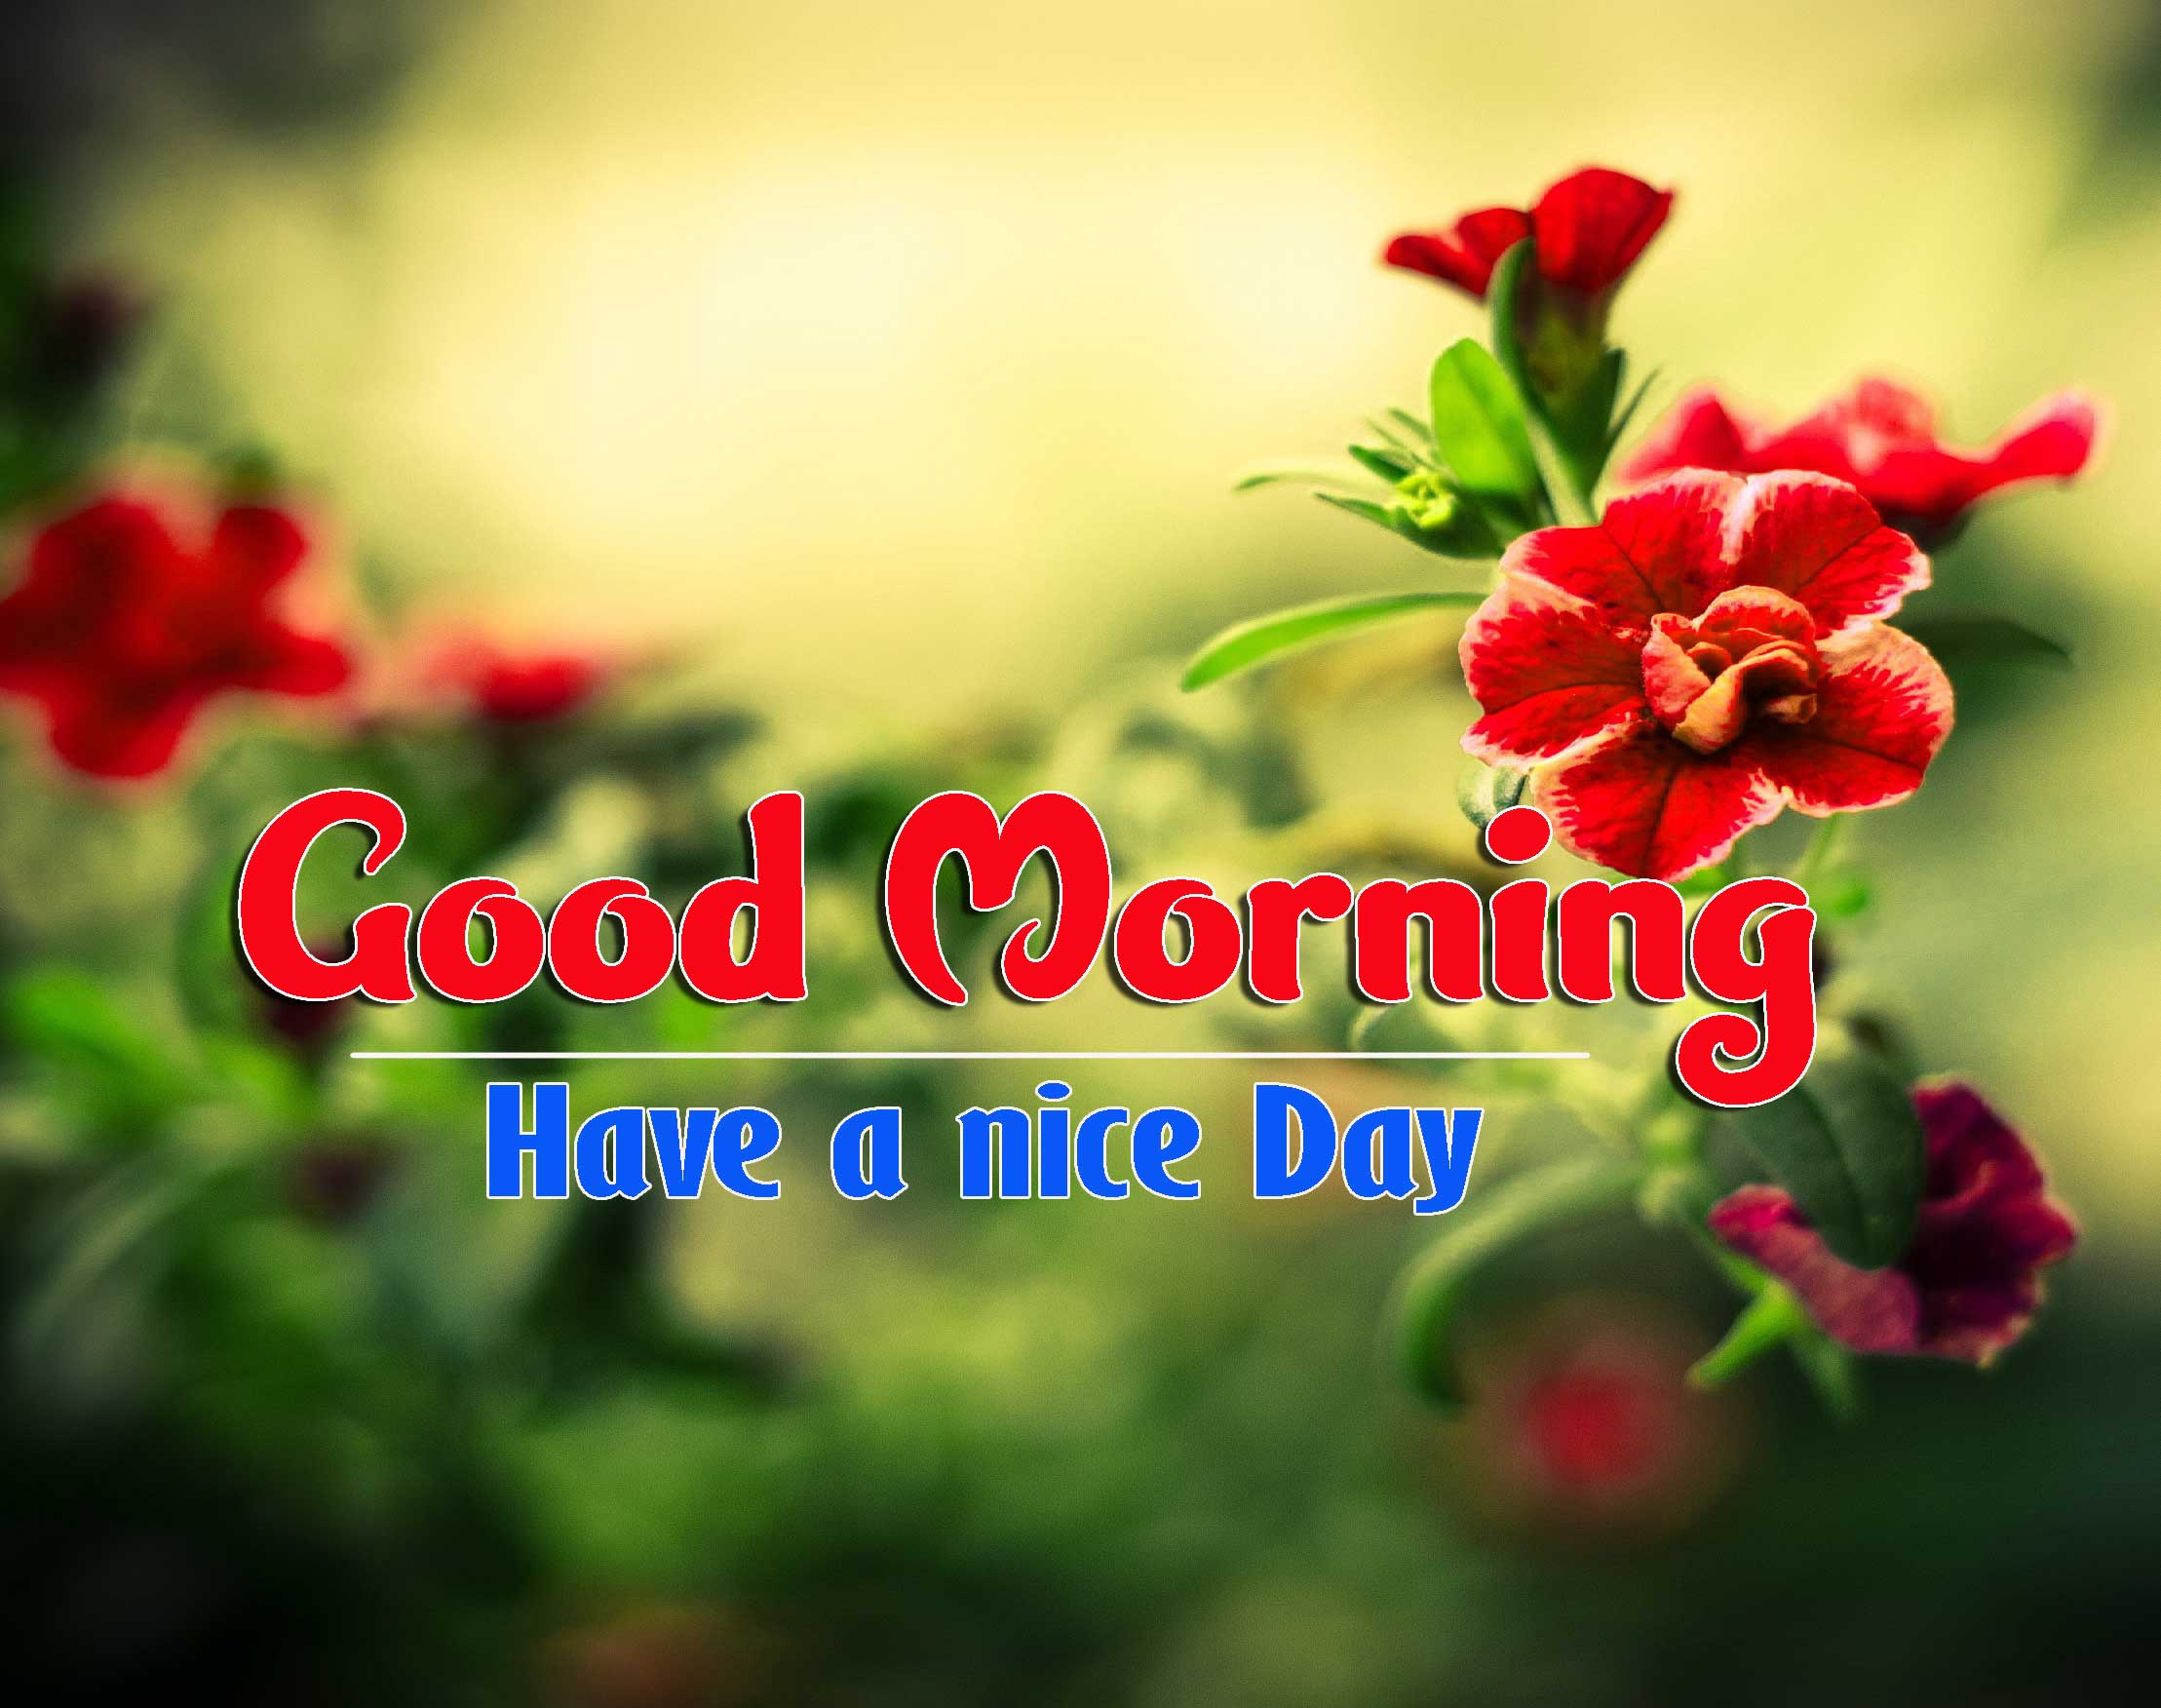 Good Morning Images HD 42